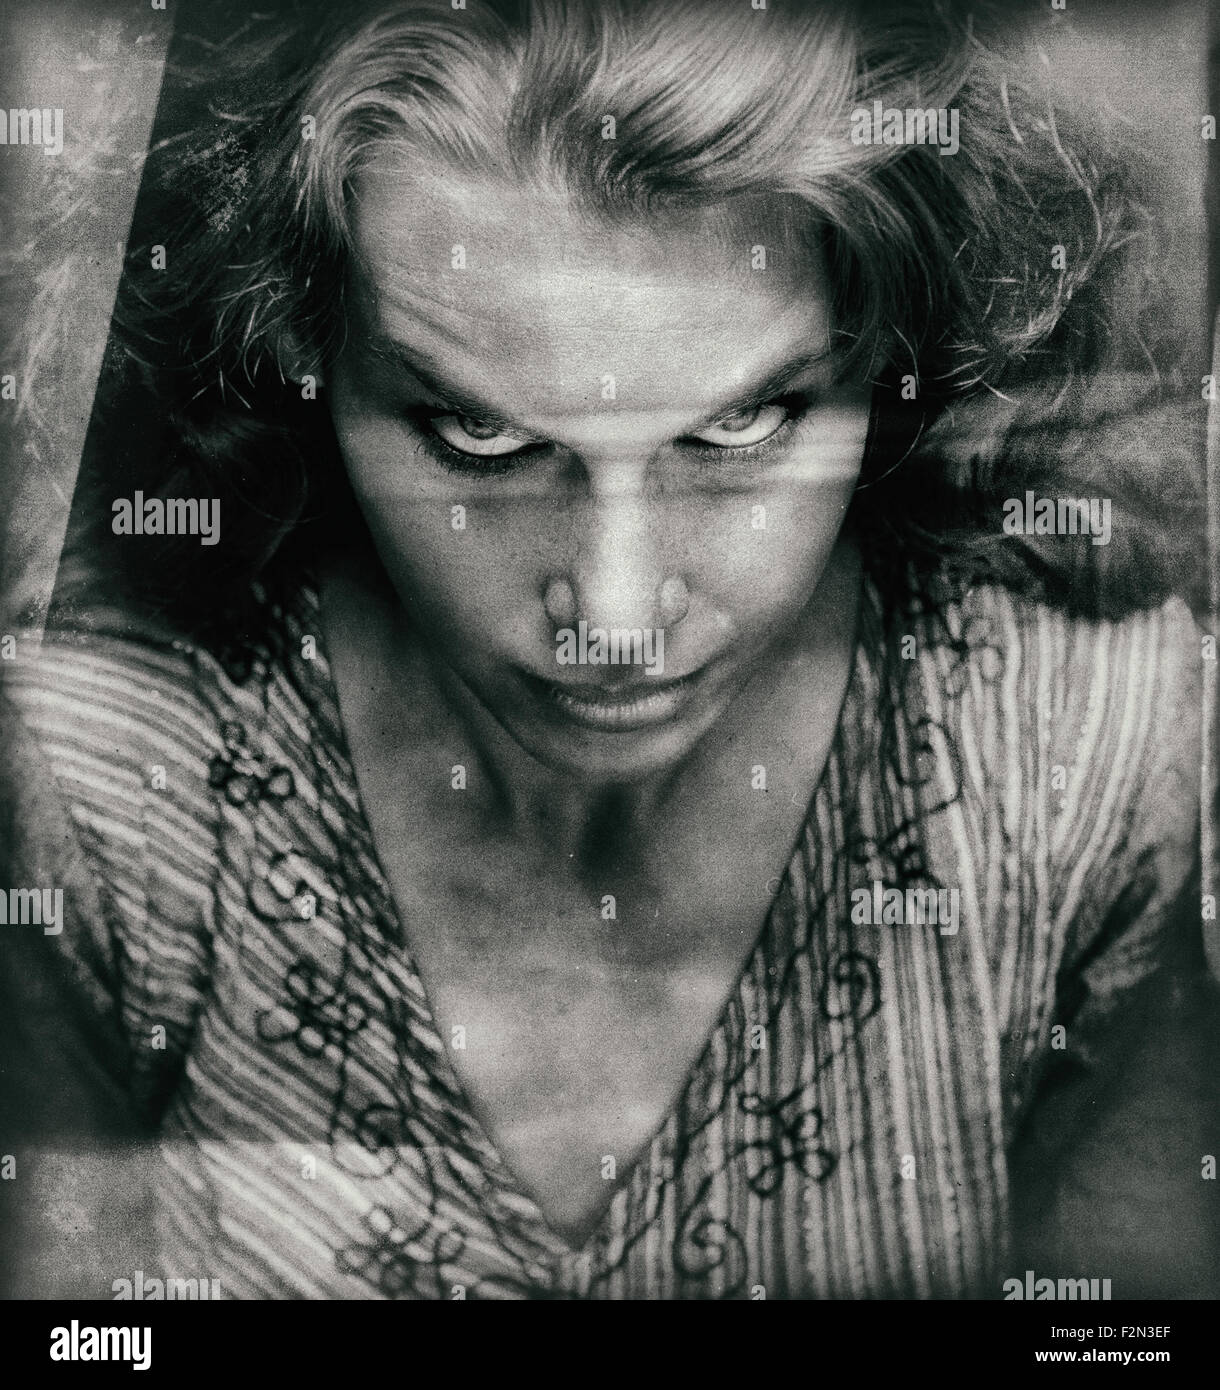 Vintage portrait of scary woman with evil looking face - Stock Image